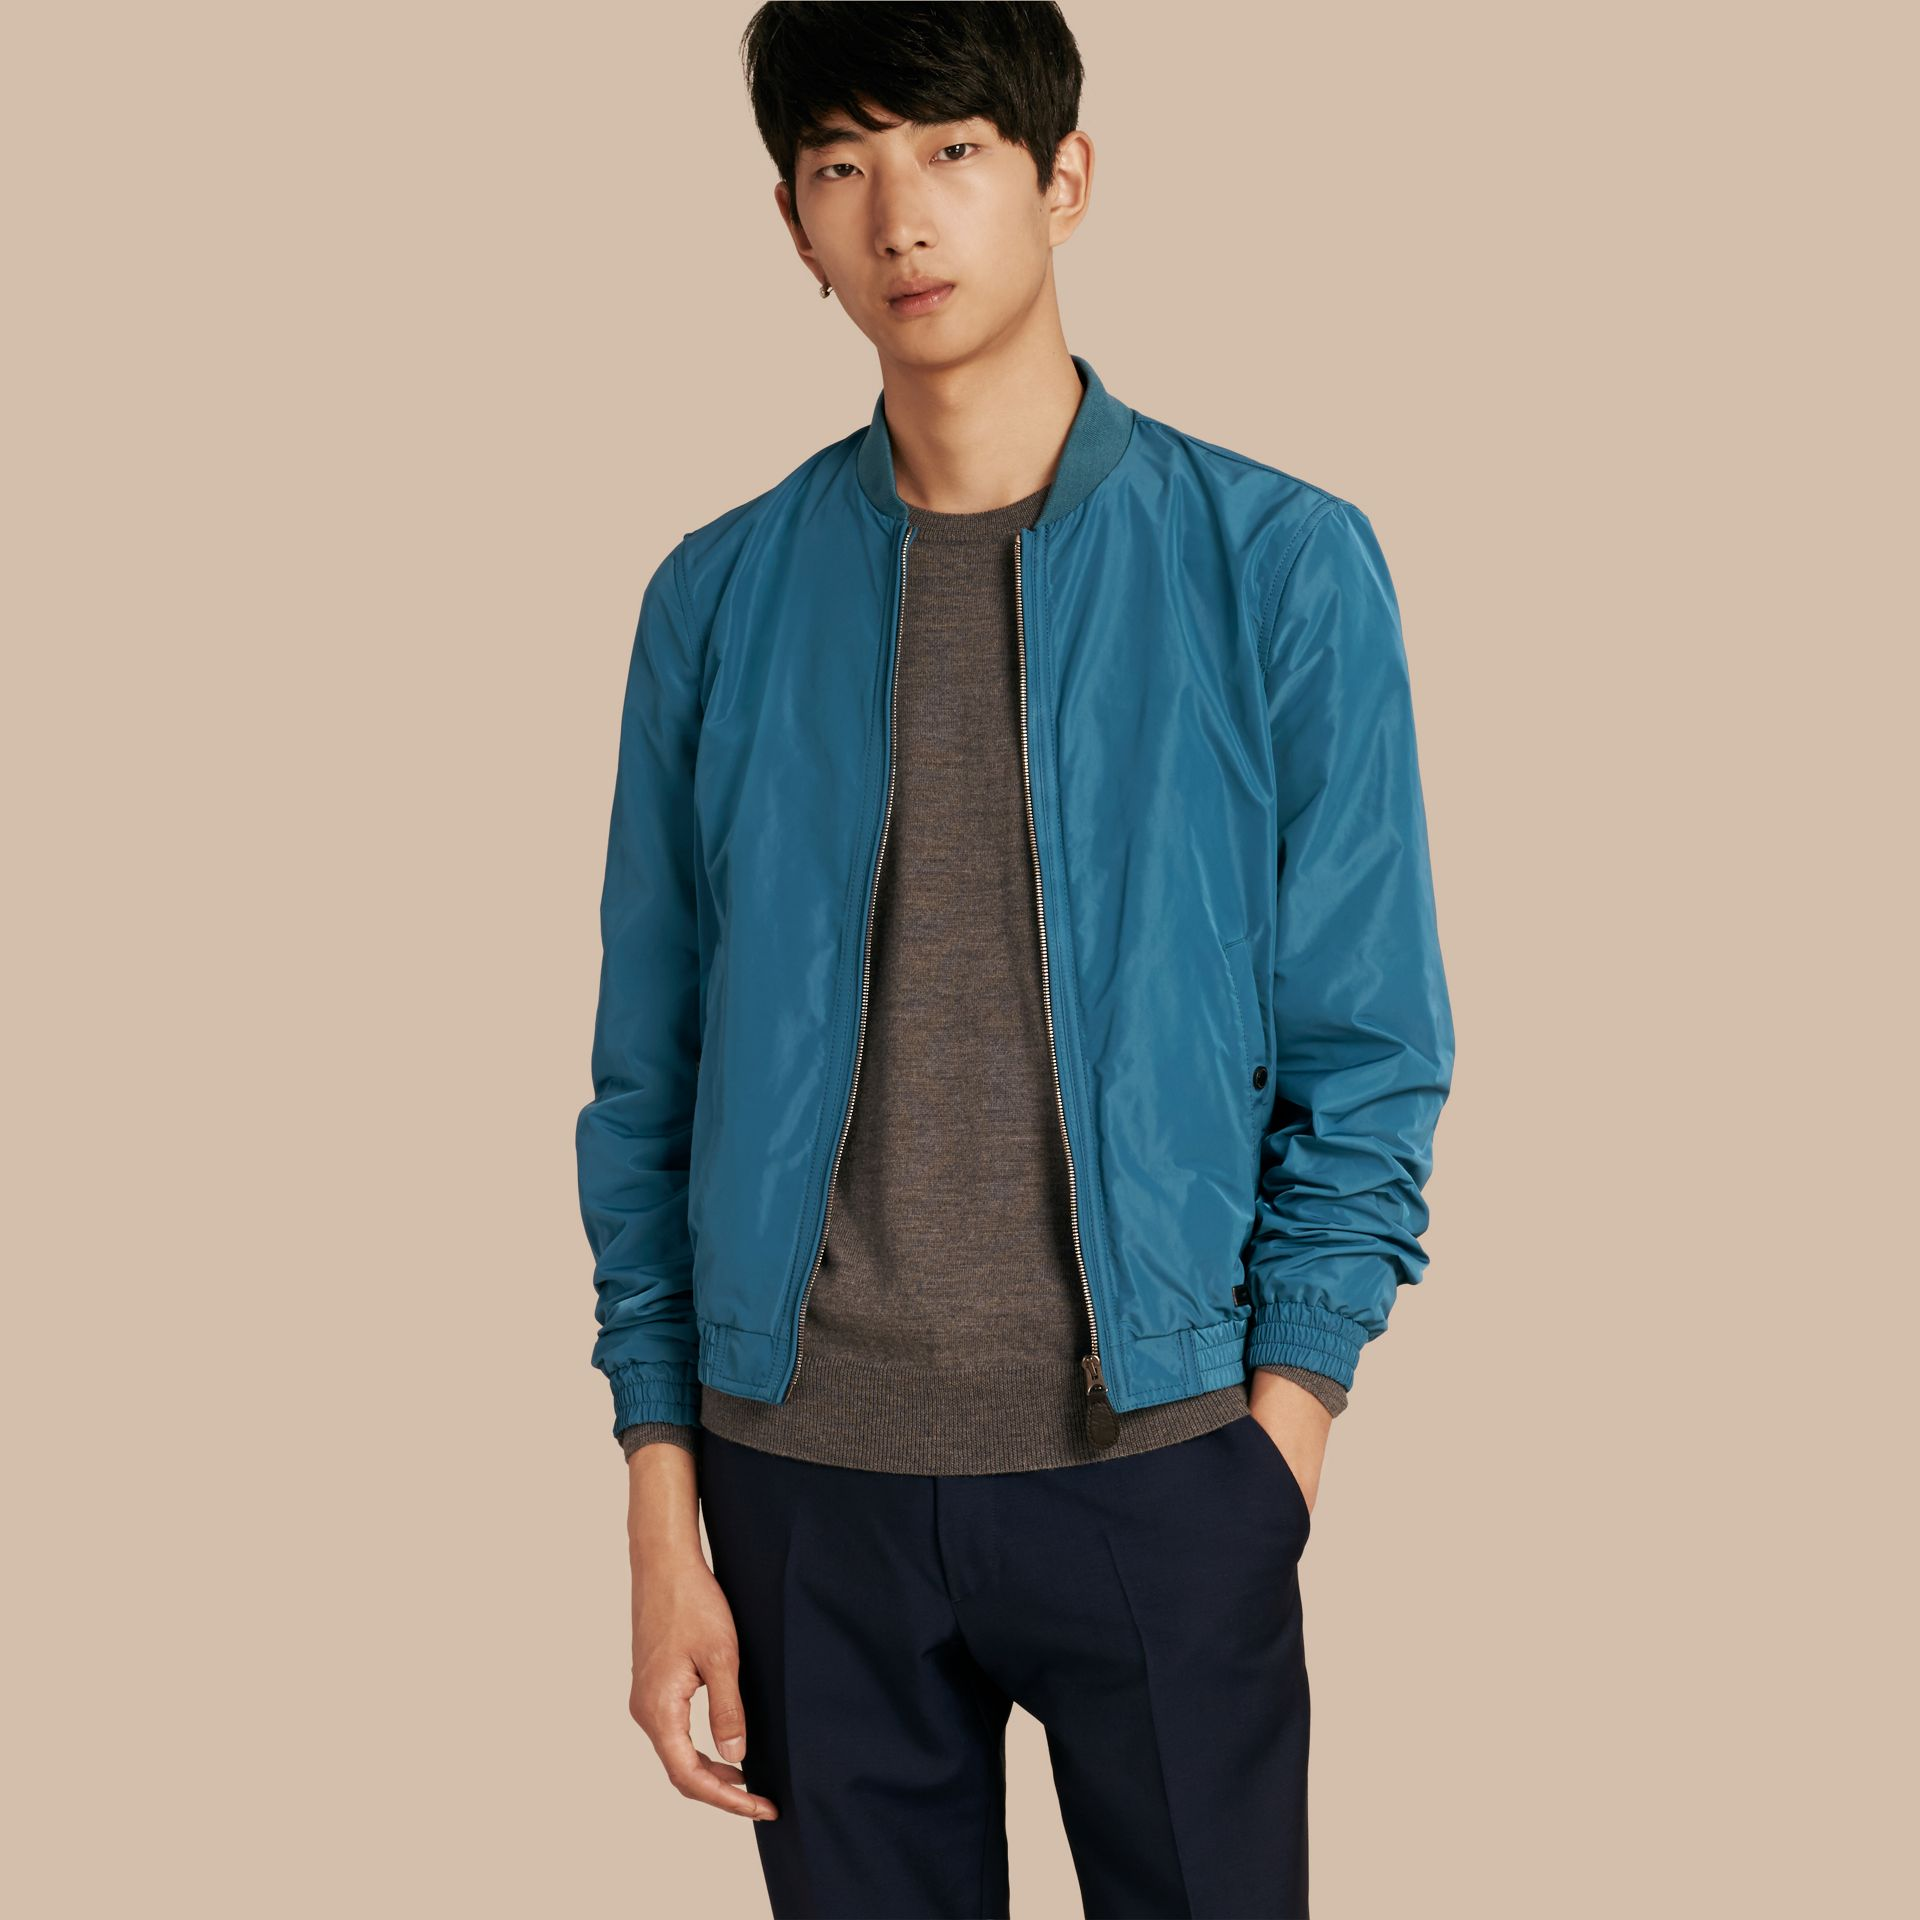 Pale petrol blue Showerproof Bomber Jacket Pale Petrol Blue - gallery image 1